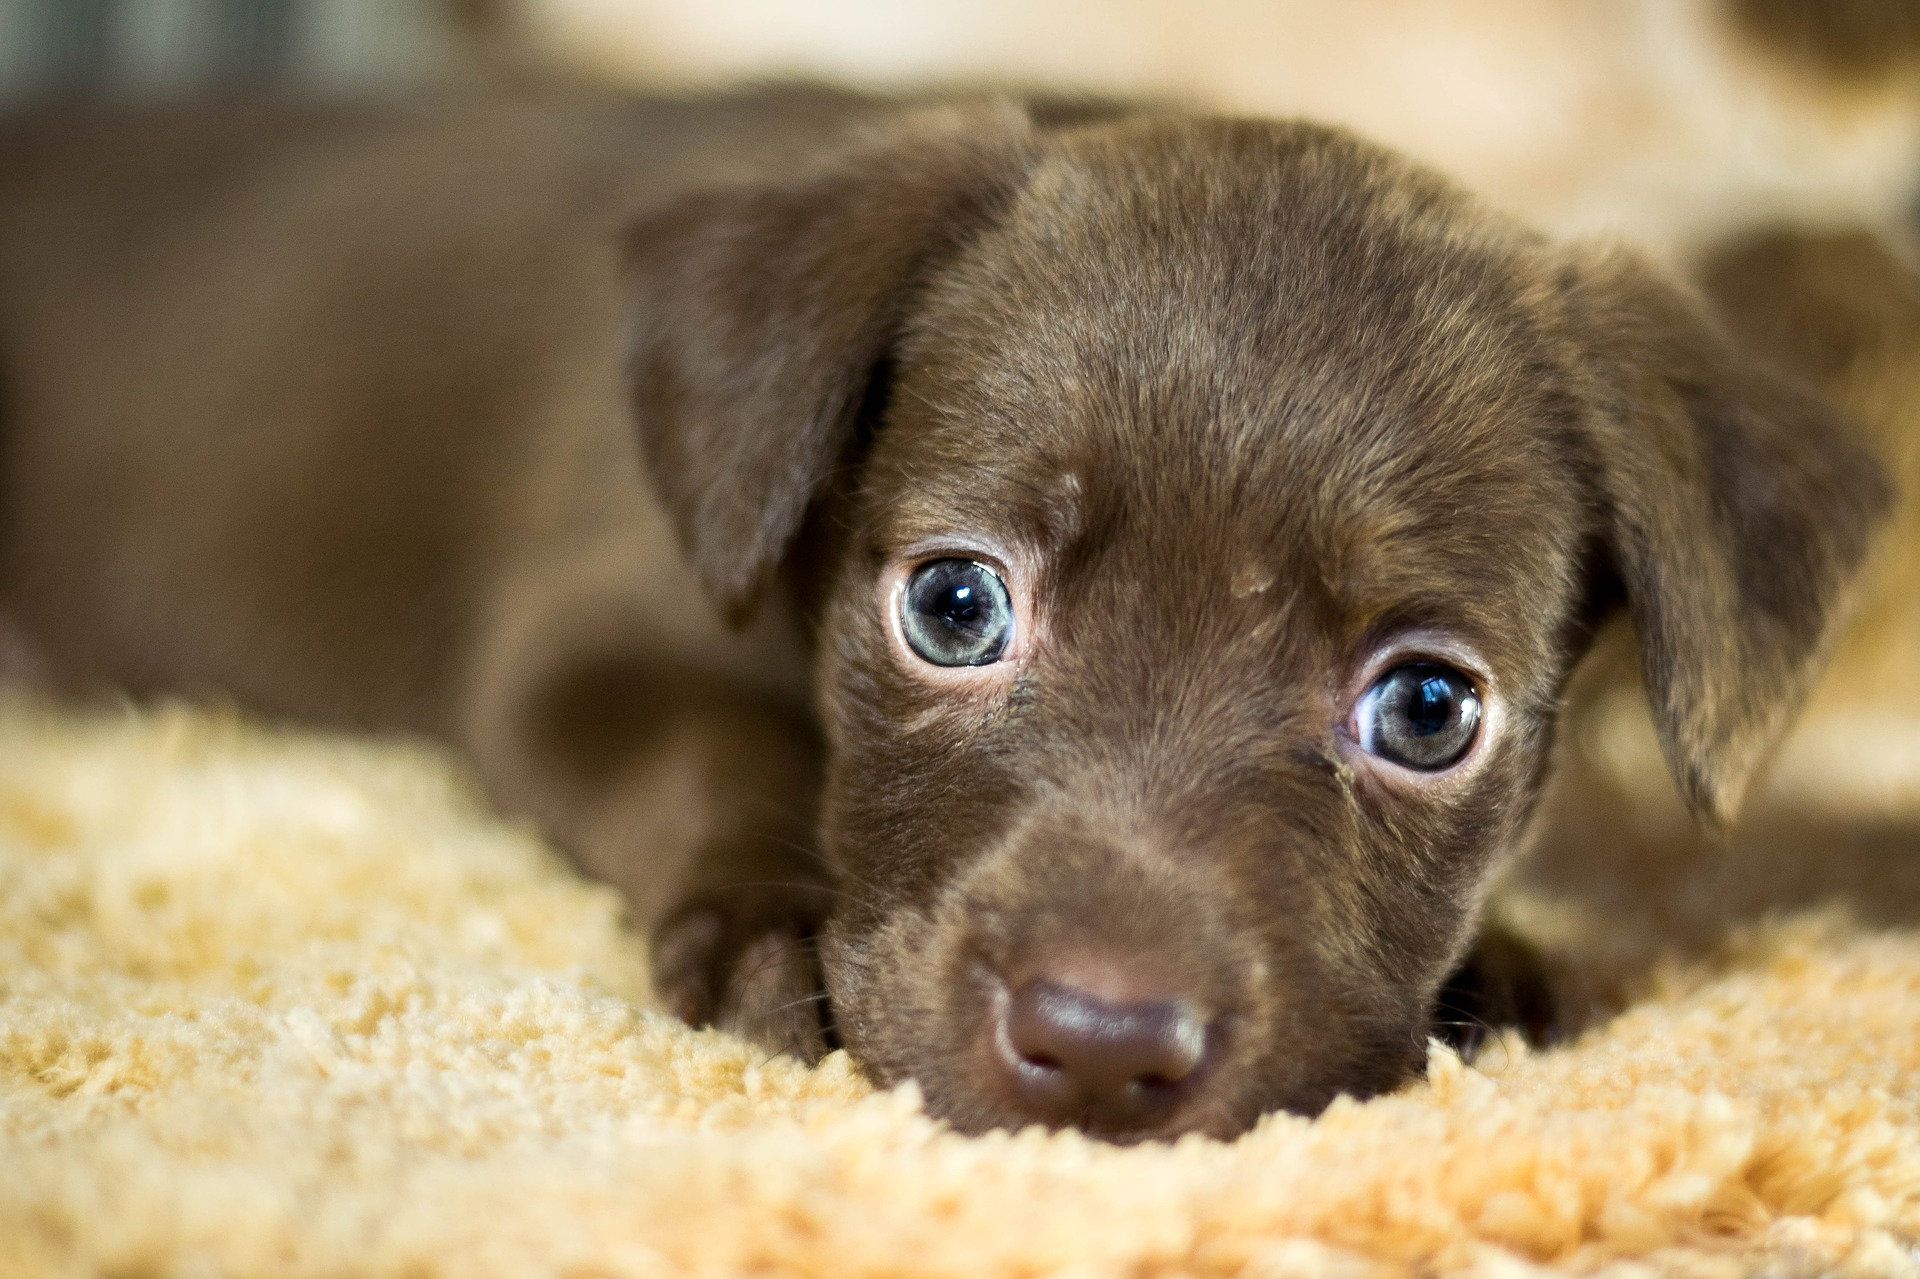 picture of a puppy resting on a rug.